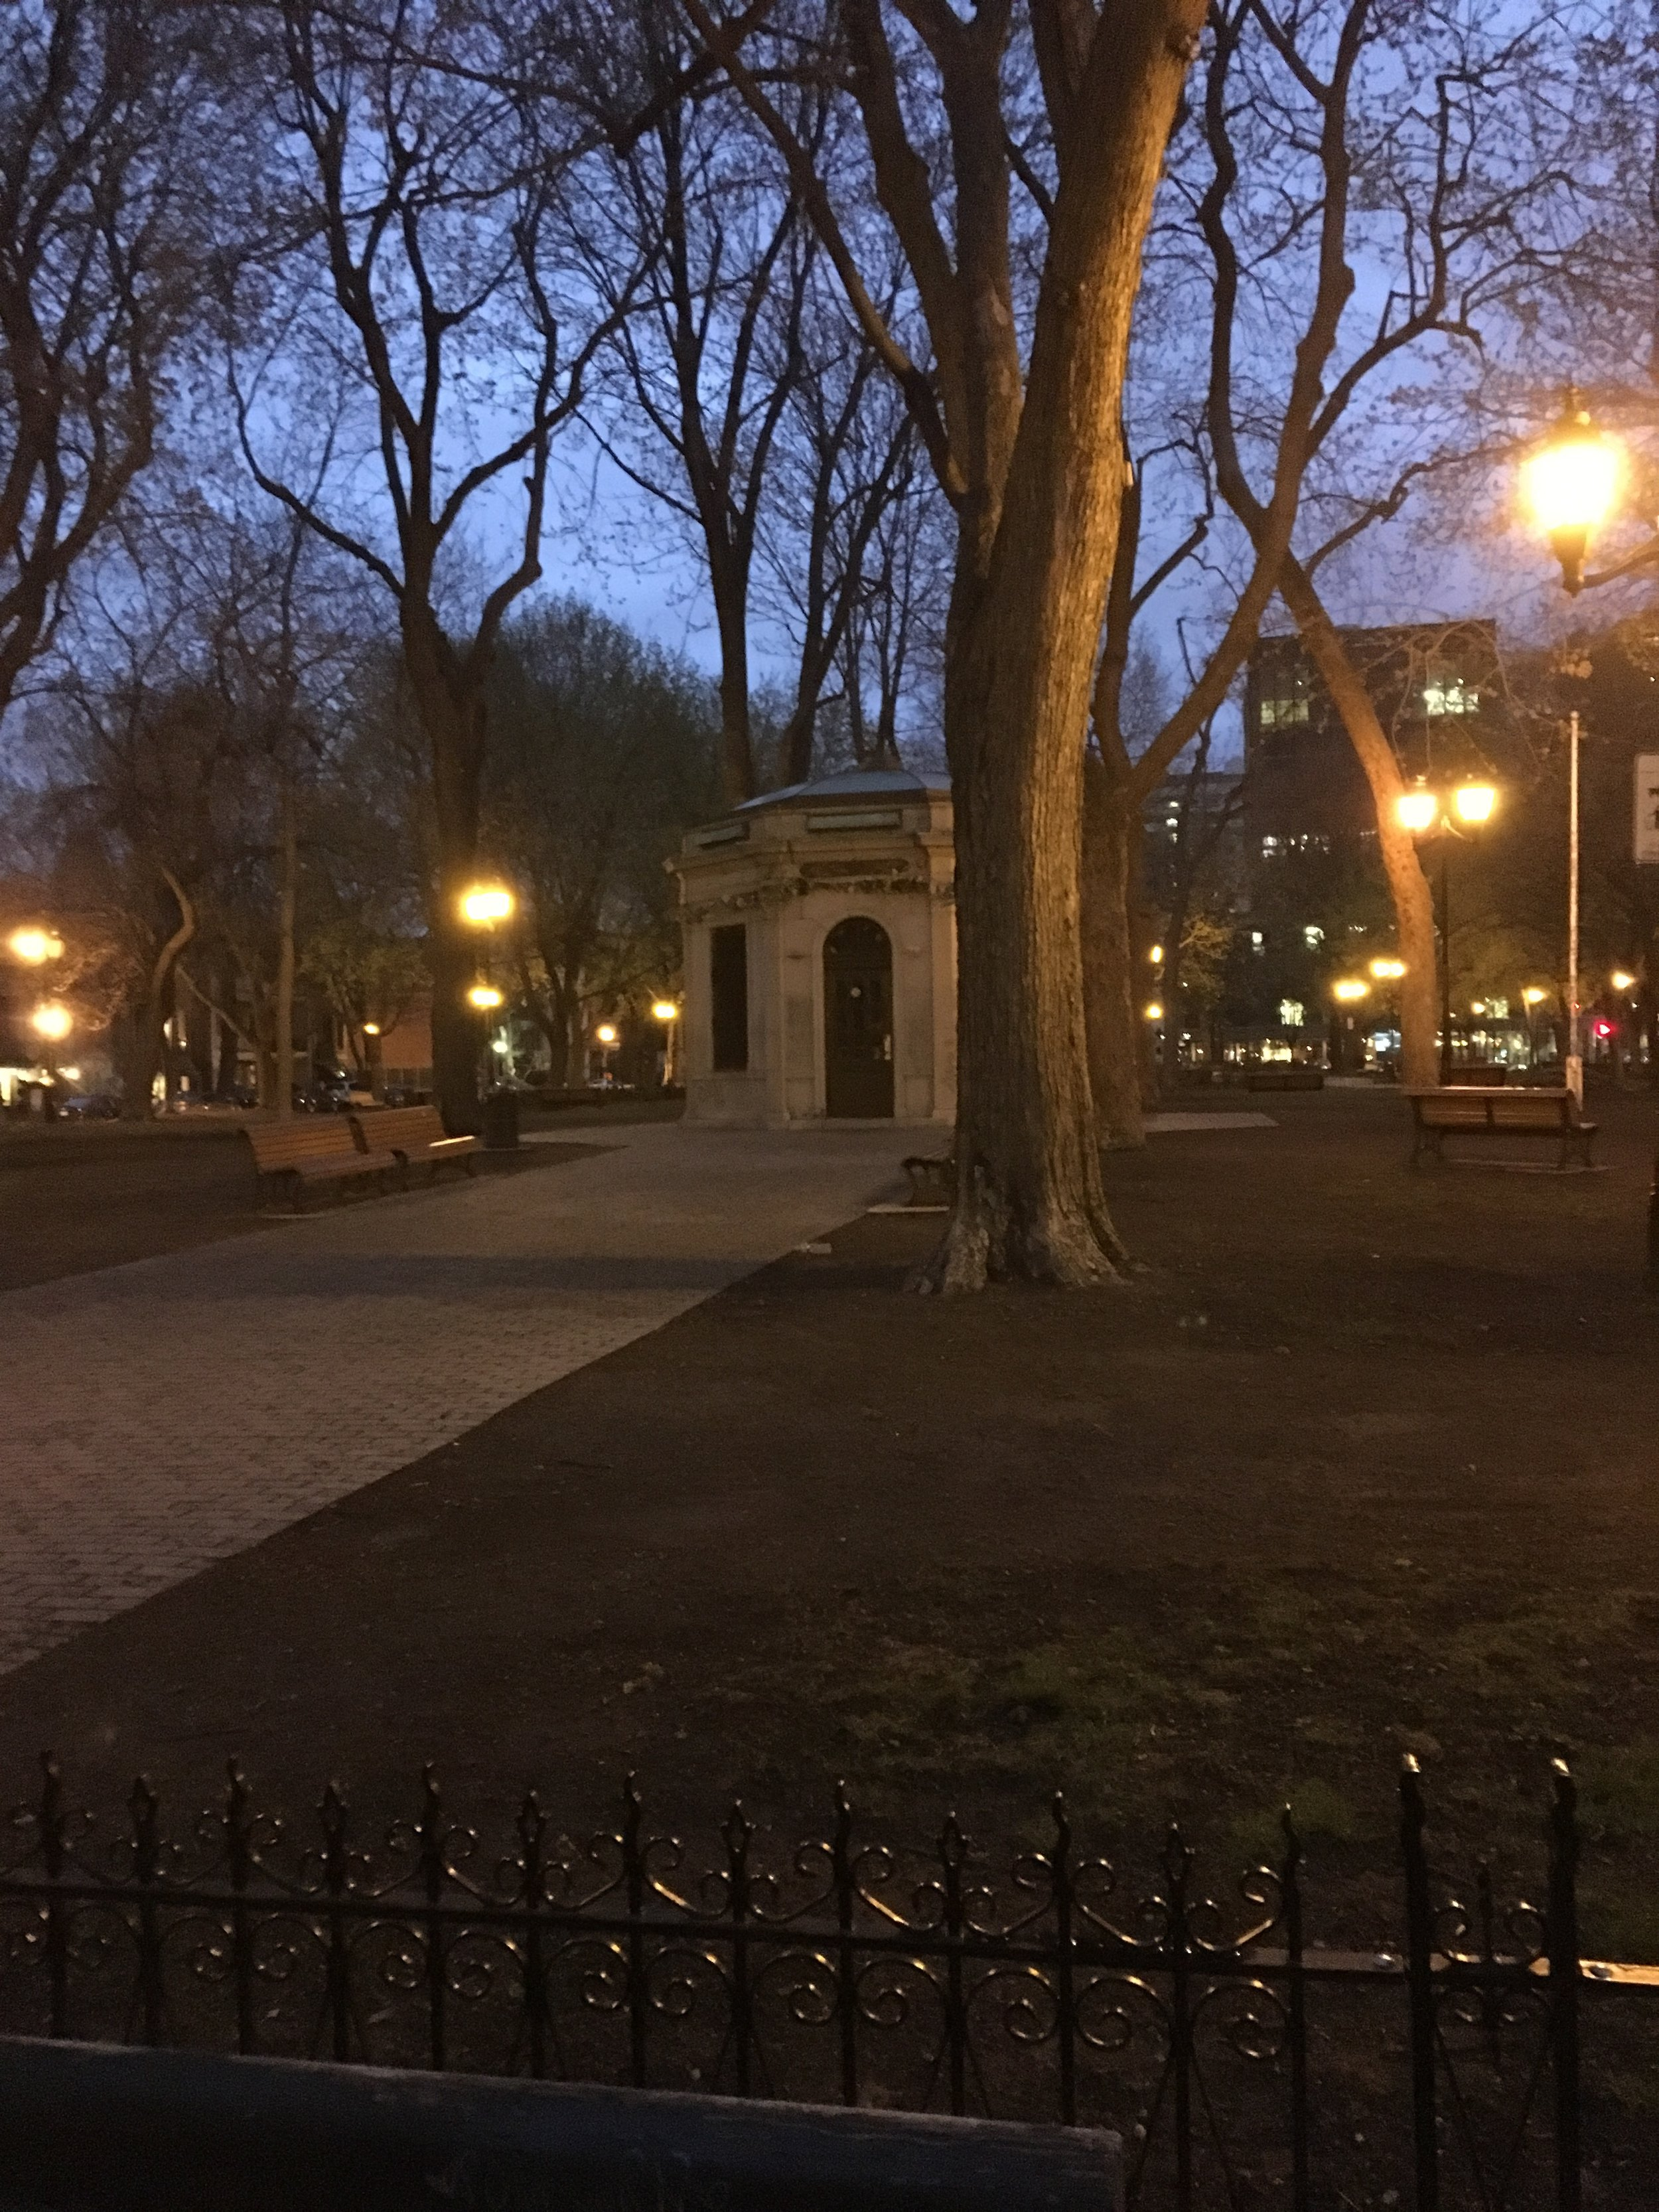 A park that reminds me of Savannah! Square Saint-Louis, with a central kiosk/cafe and fountain, is surrounded by Victorian row houses